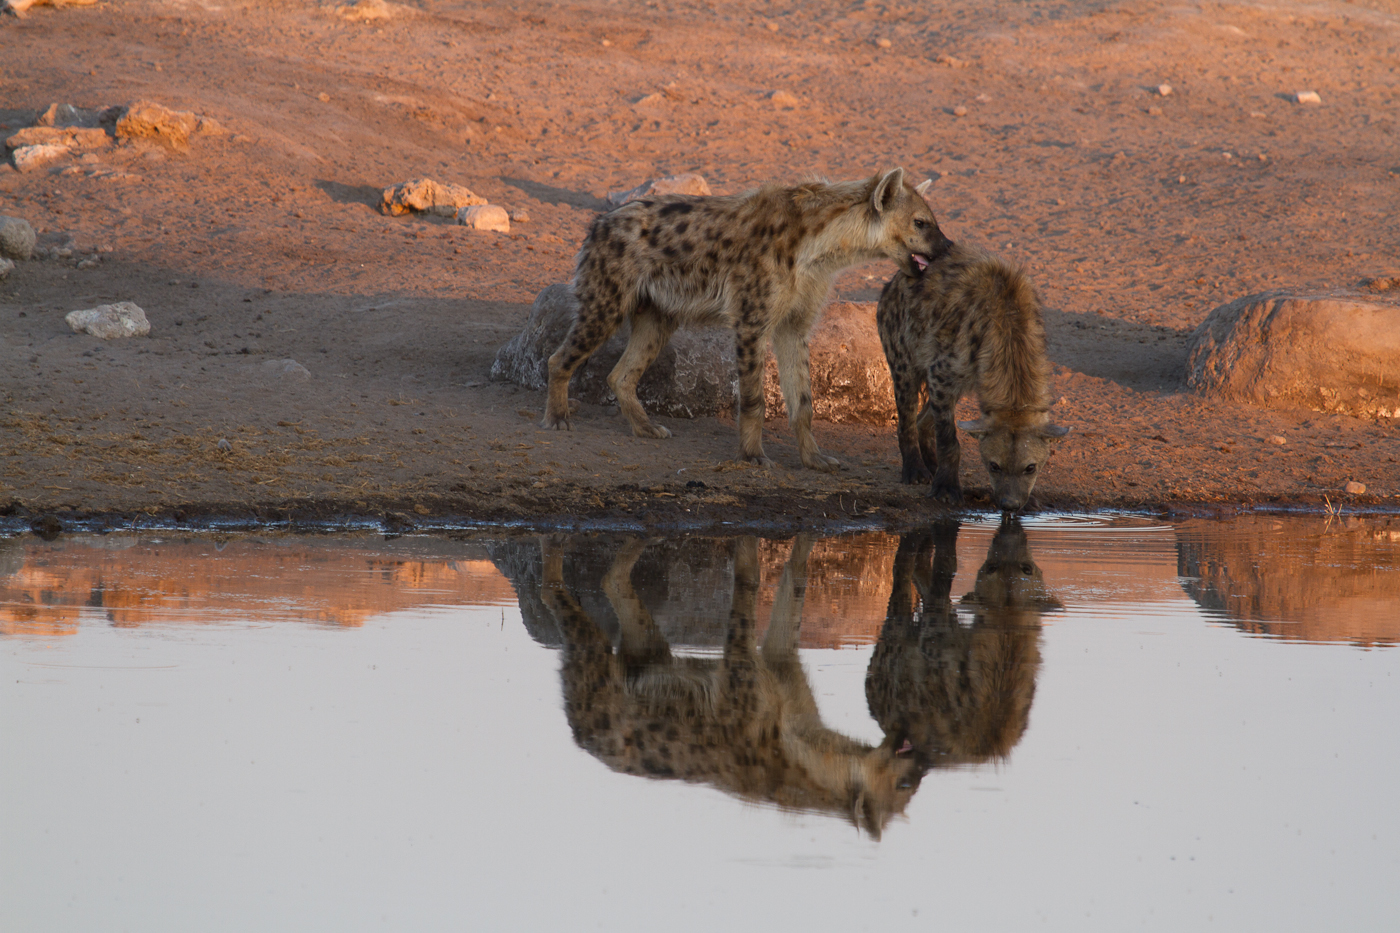 Hyenas greet one another at the Chudup Waterhole in Etosha National Park.